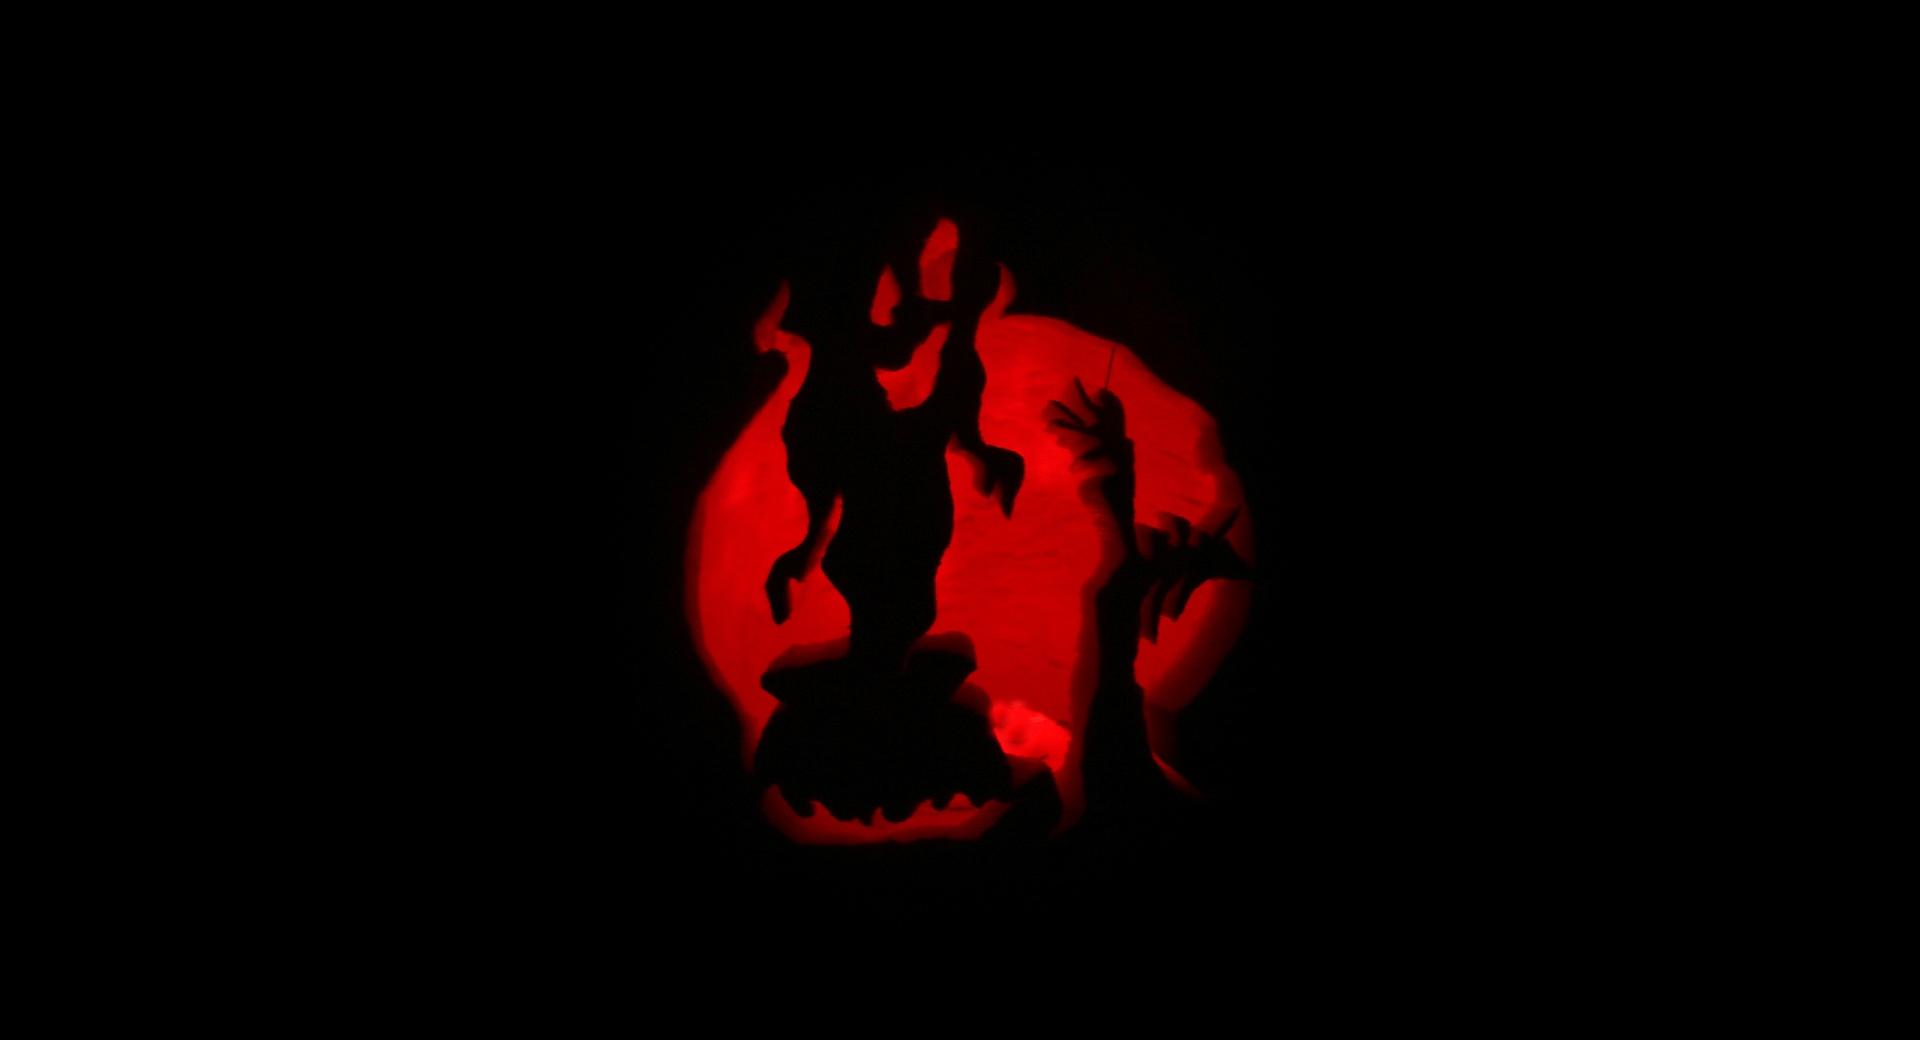 Ghost Pumpkin Carving wallpapers HD quality